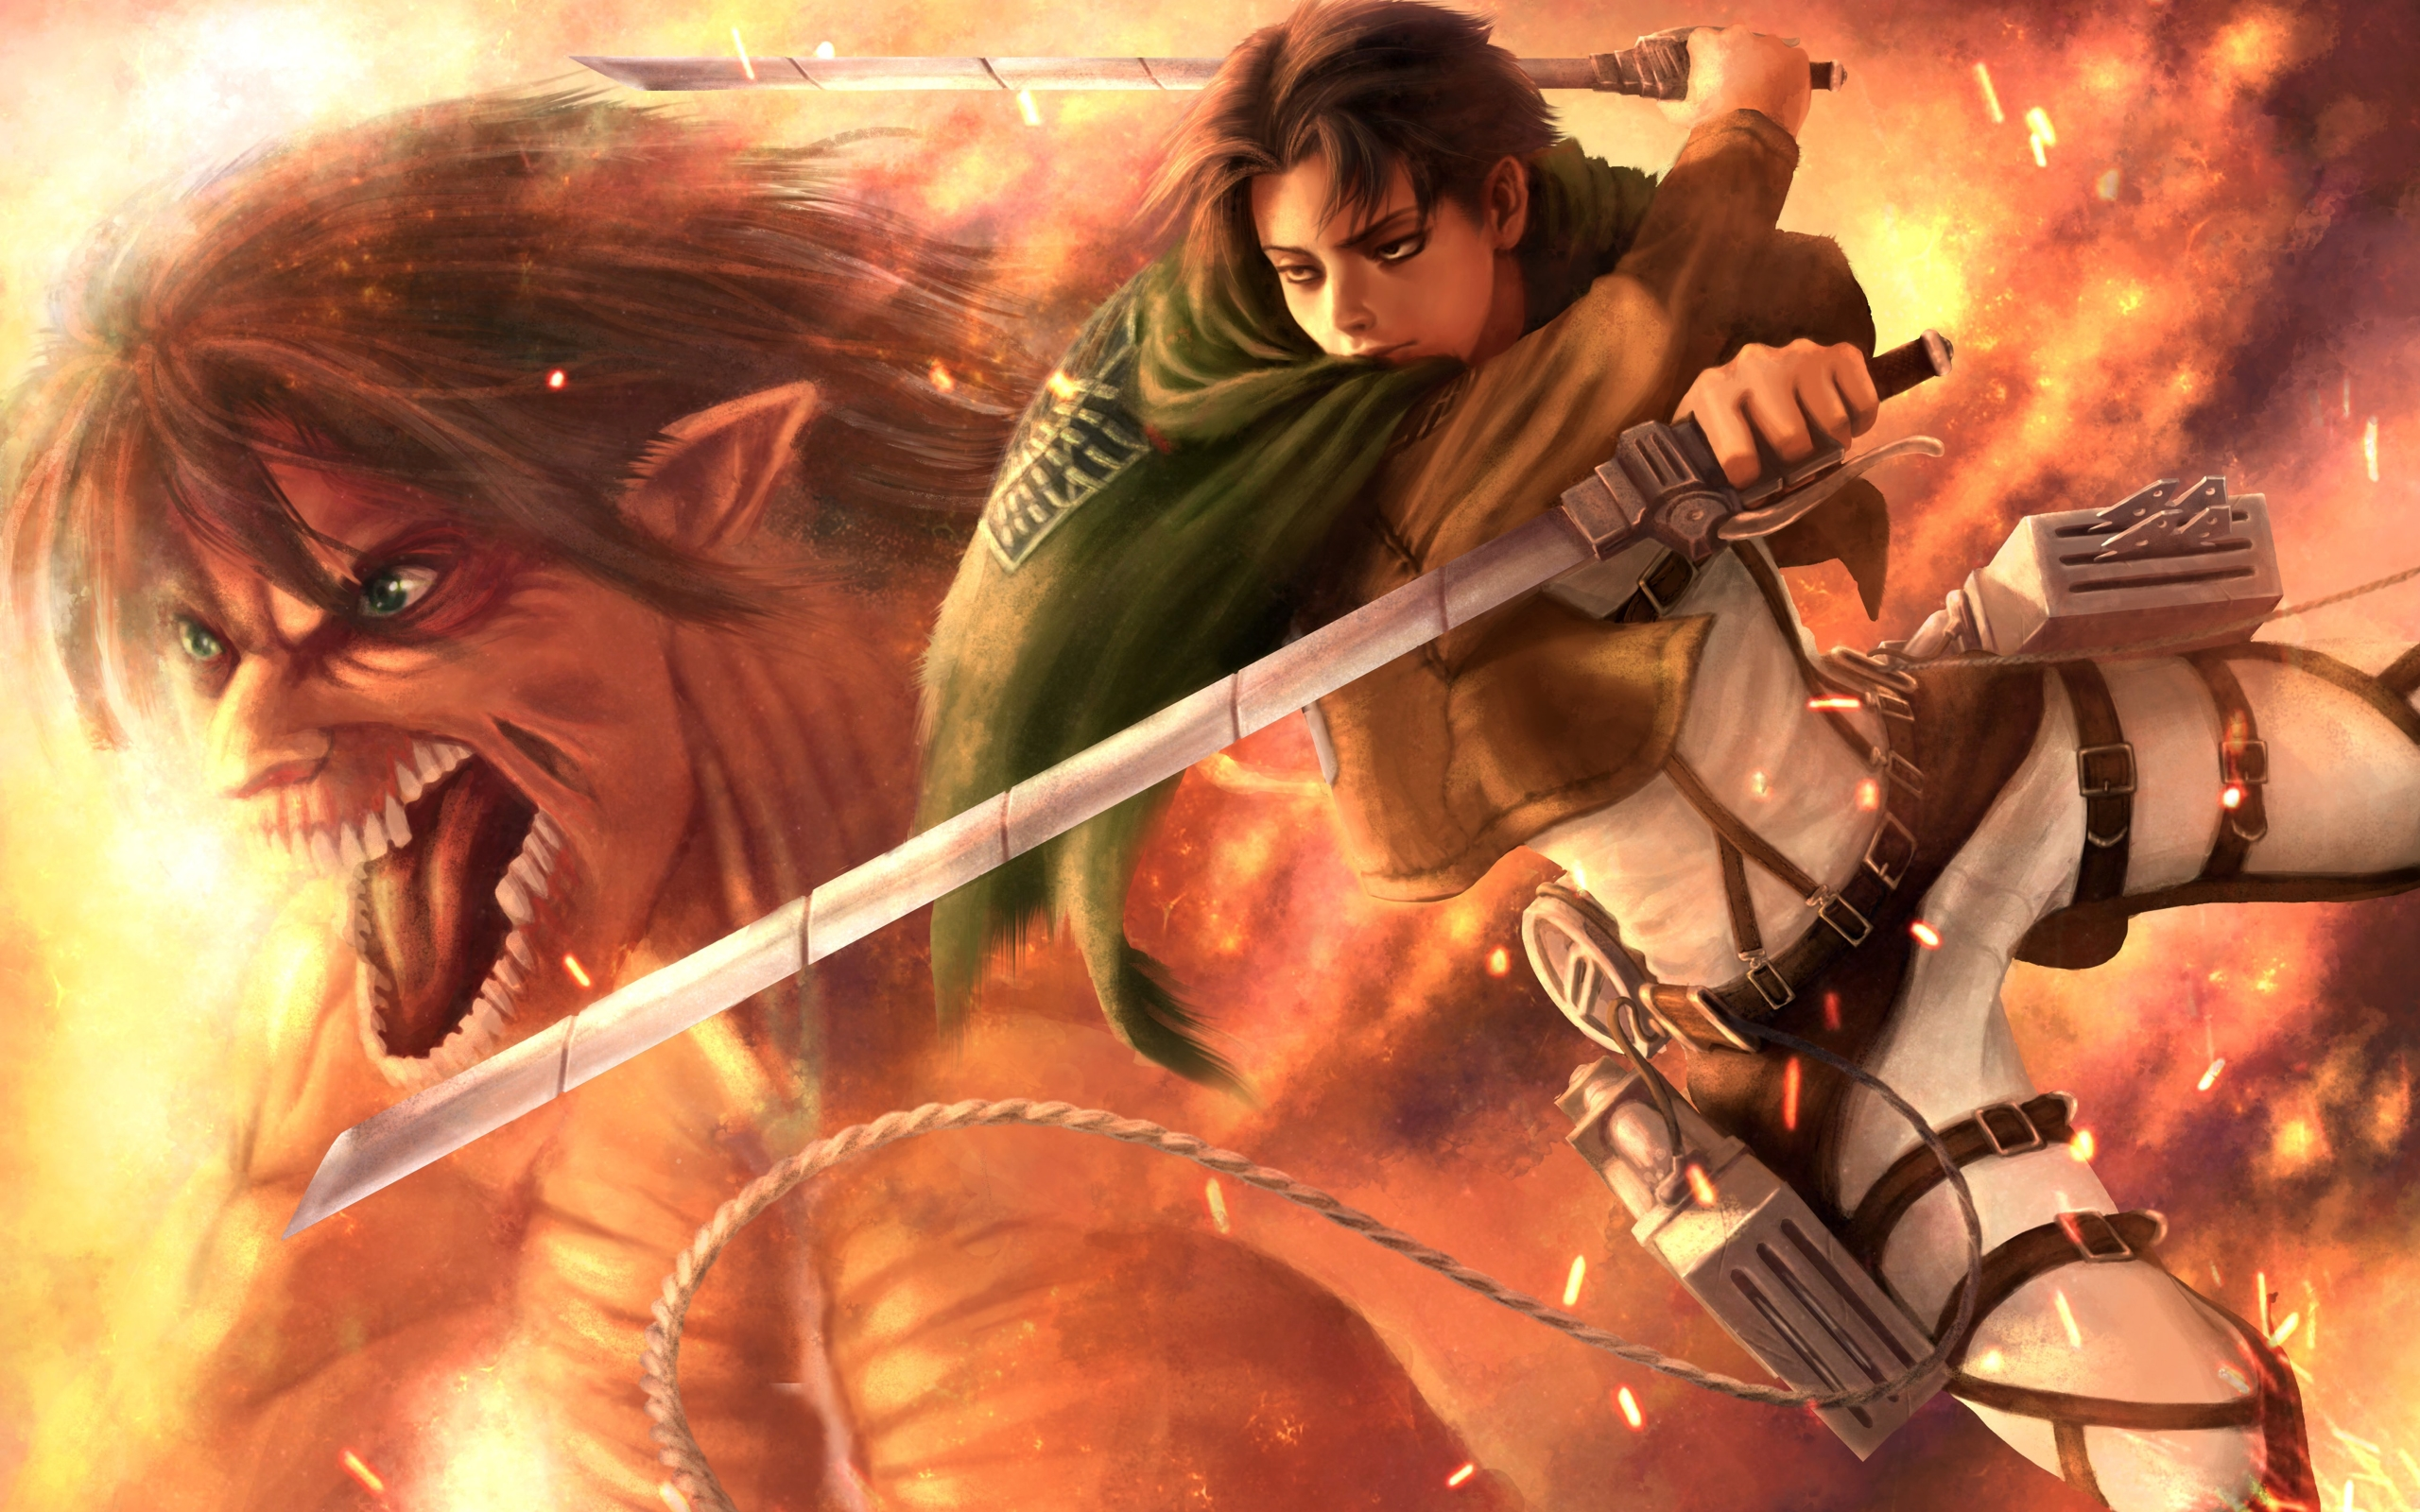 Wallpaper Of Eren Yeager Levi Ackerman Anime Attack Attack On Titan Wallpaper 3d 2560x1600 Wallpaper Teahub Io